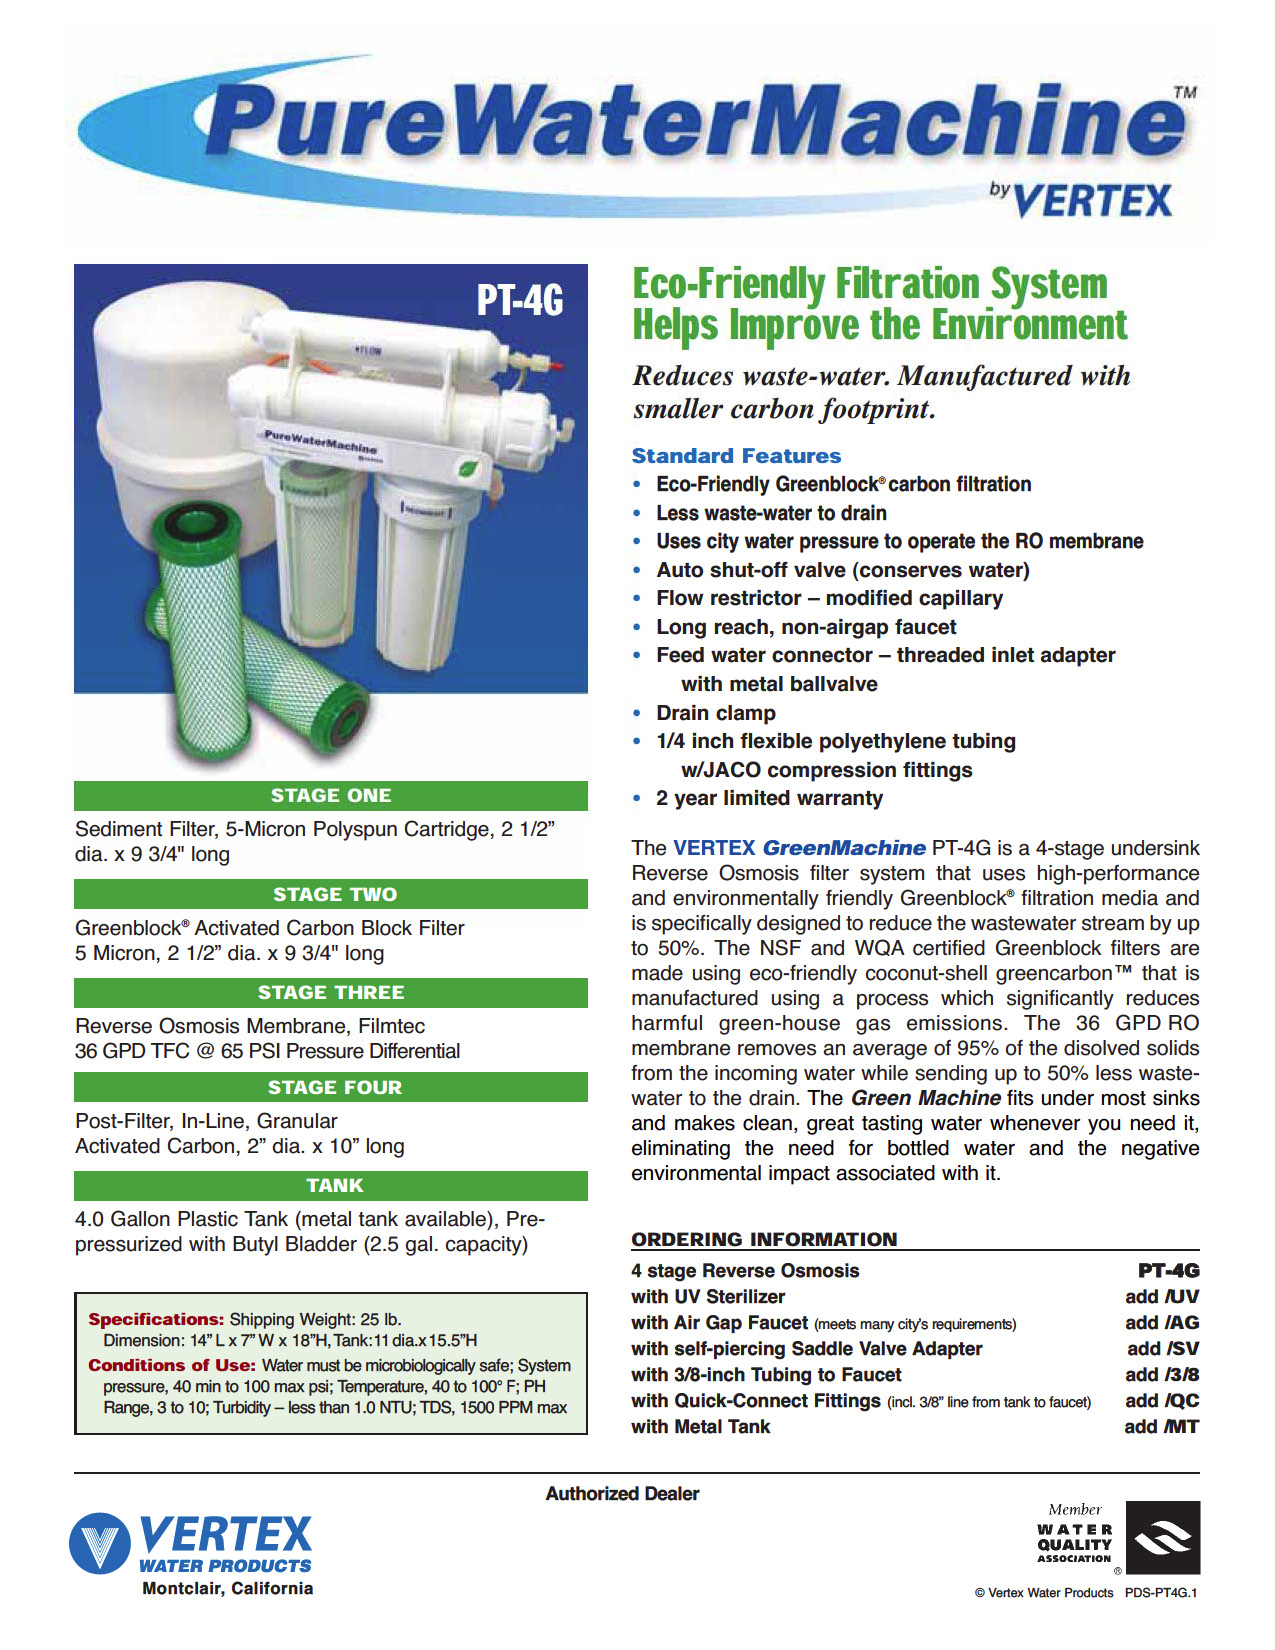 Vertex Pure Water Green Machine PT-4G Undersink Reverse Osmosis ...